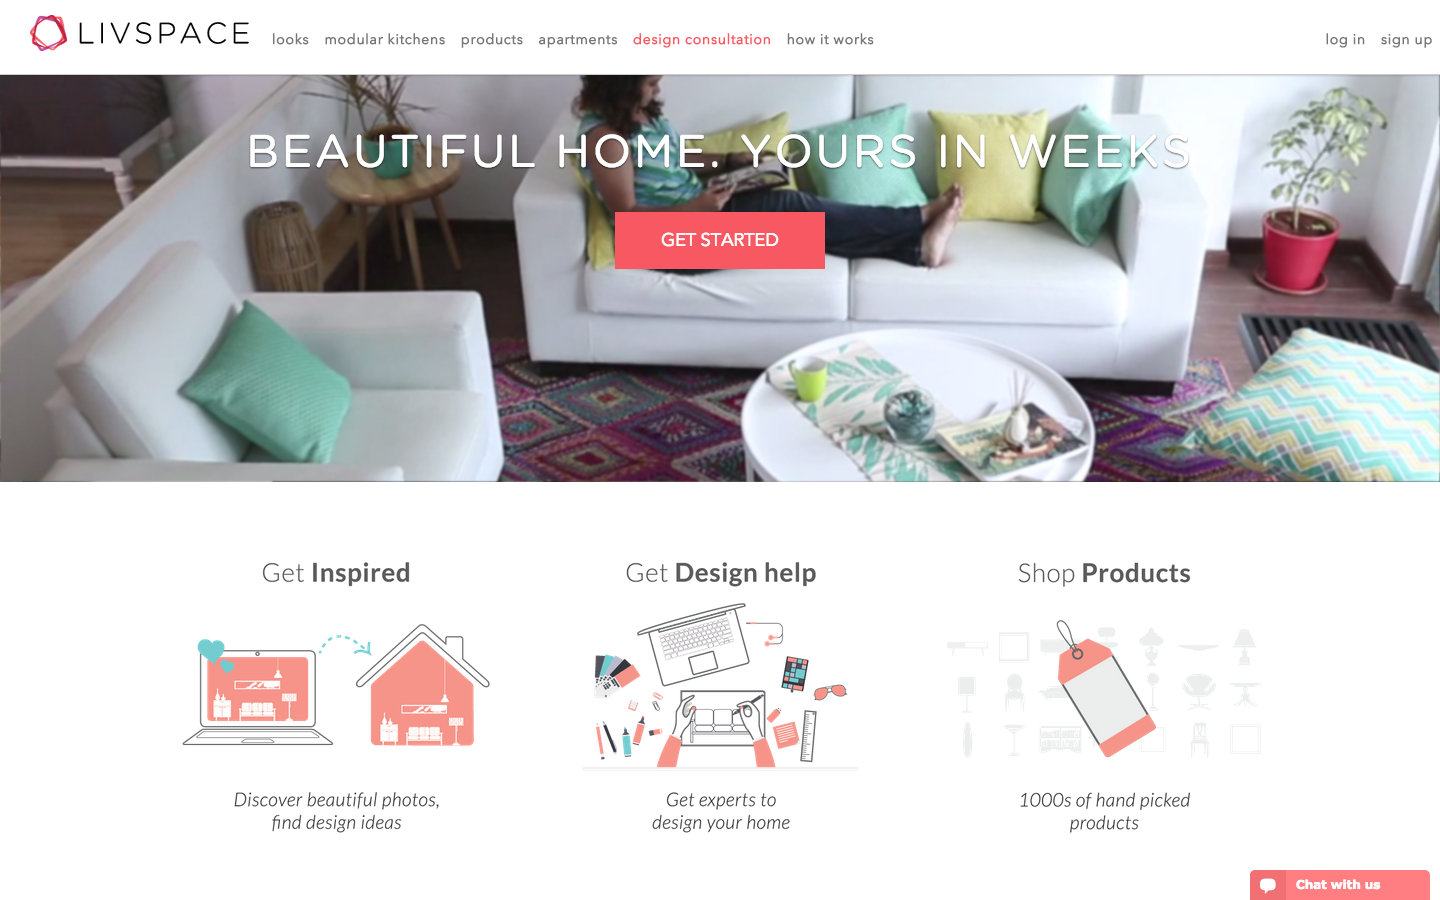 Livspace Lands $8M To Expand Its Online Home Design Service In India